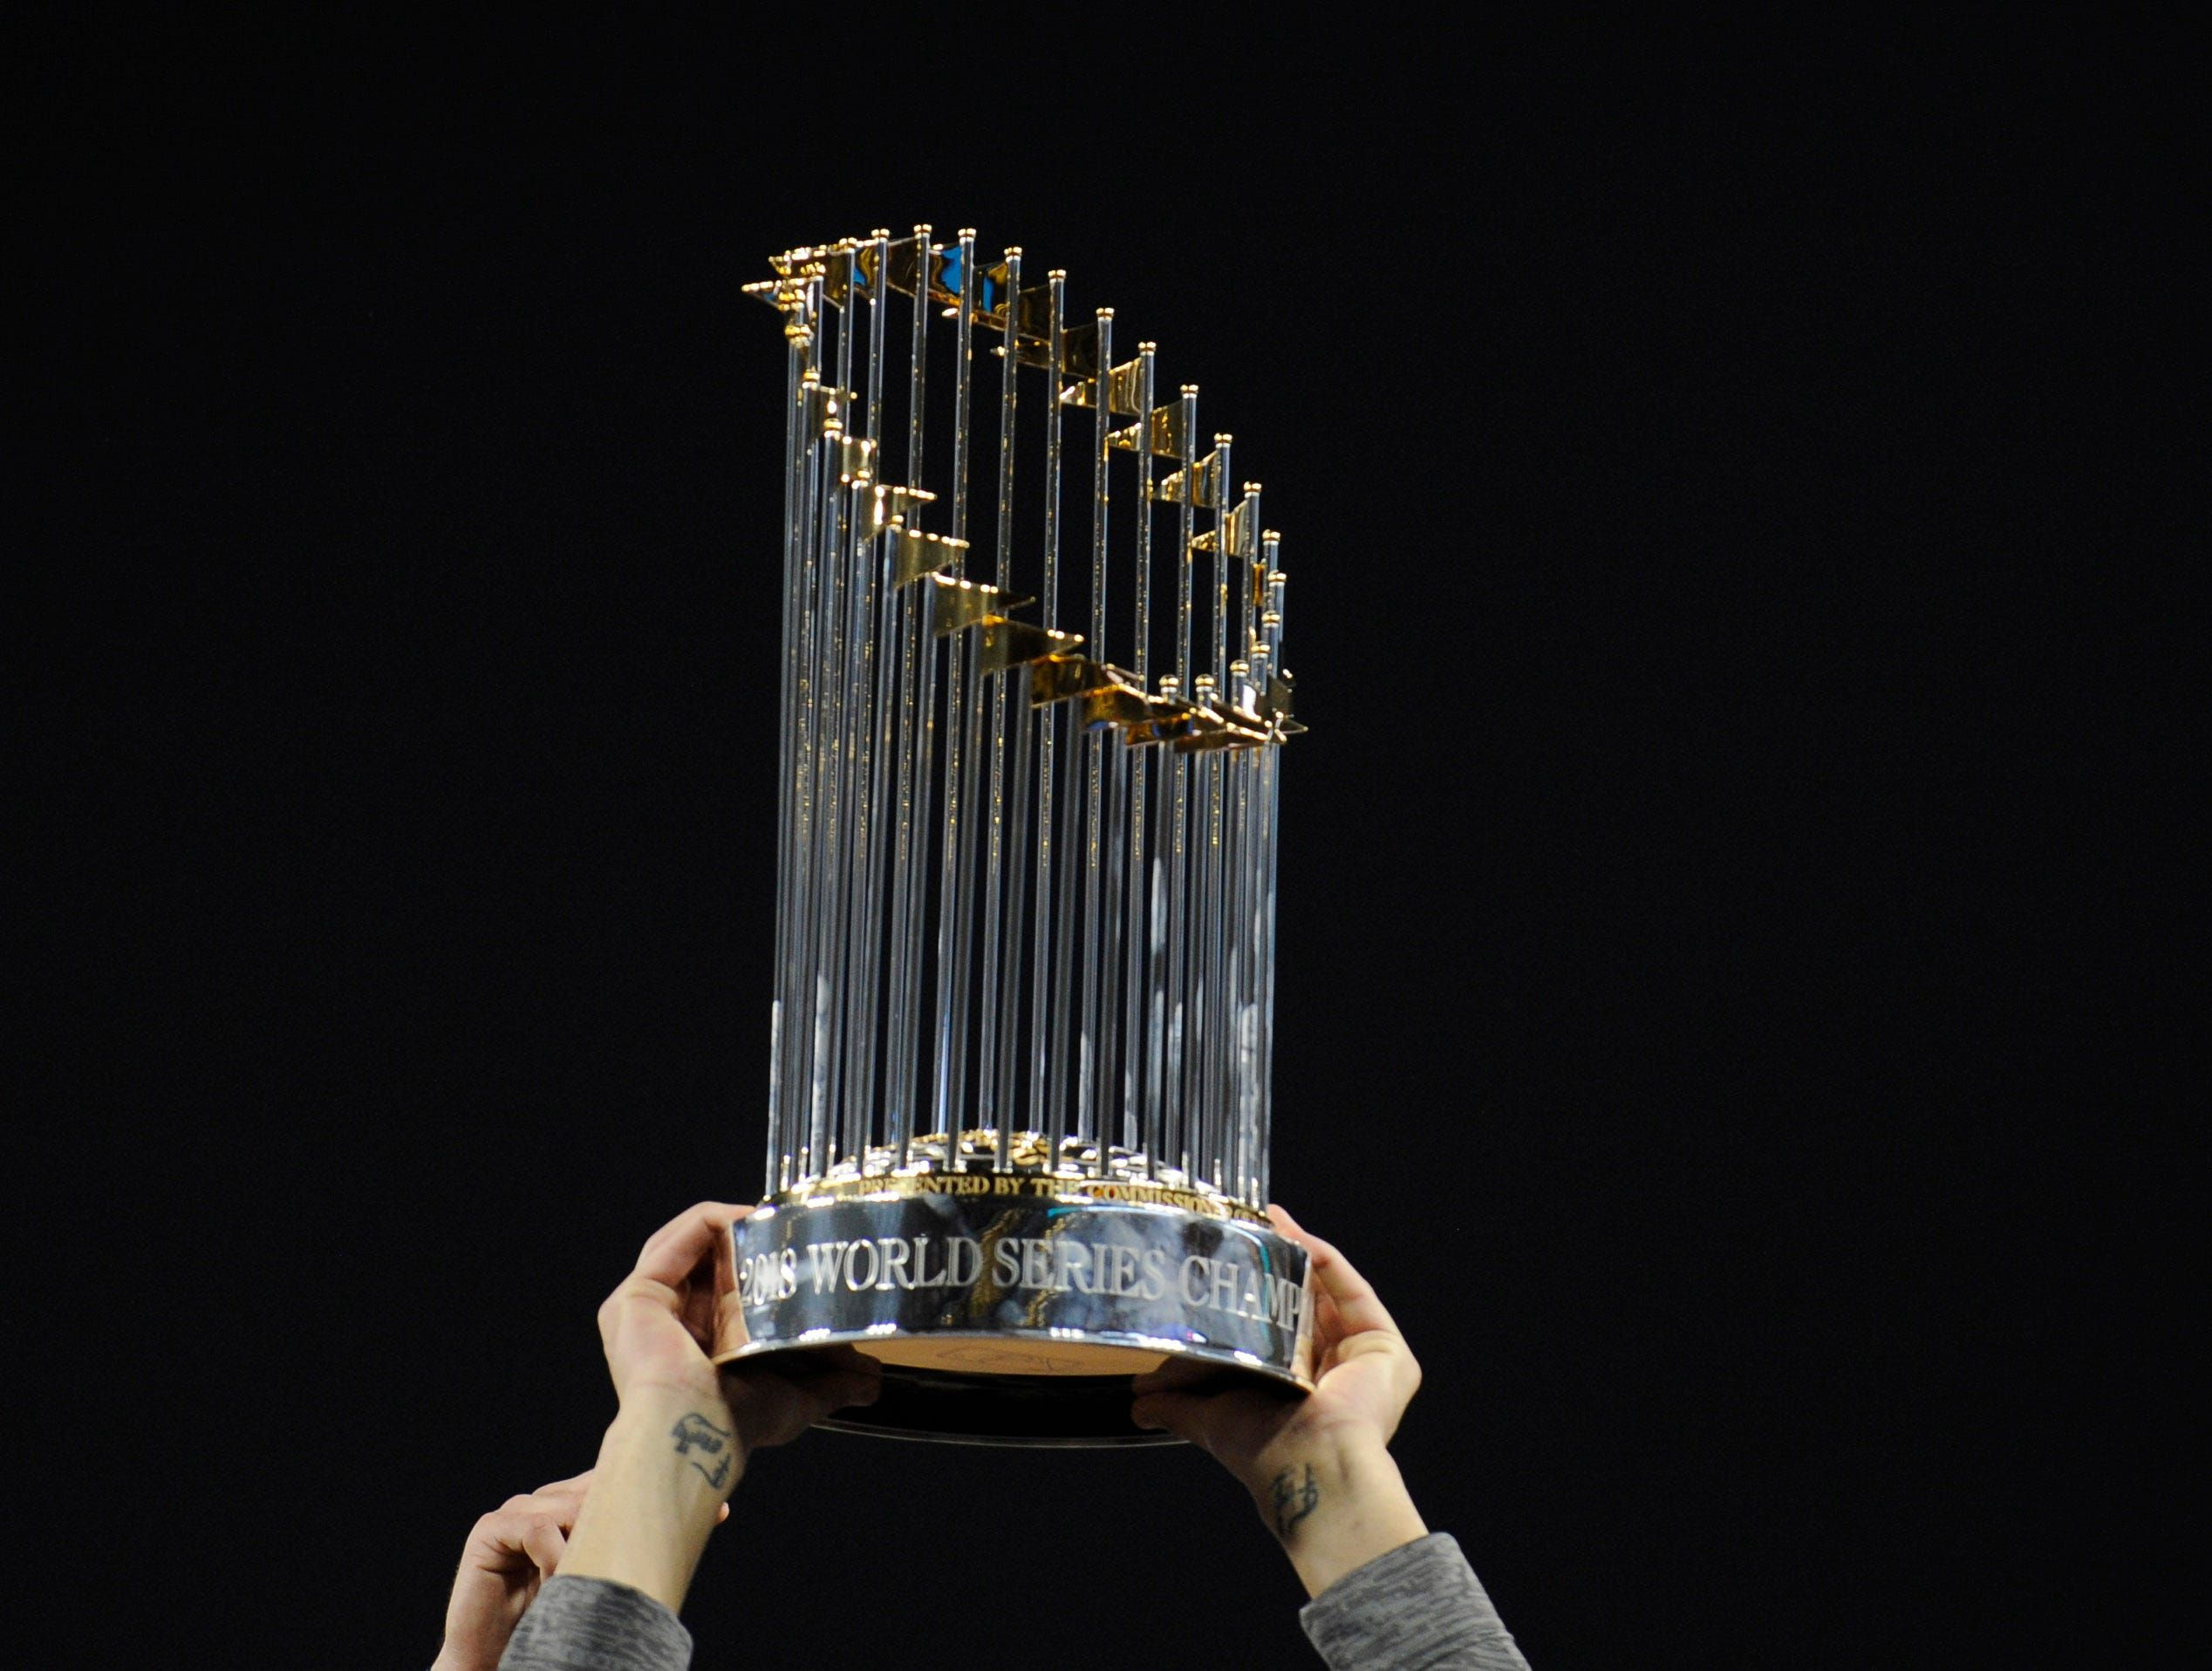 Major League Baseball Playoffs Schedule 2019 Scores Results Through To World Series Playoff Schedule Baseball Playoffs World Series